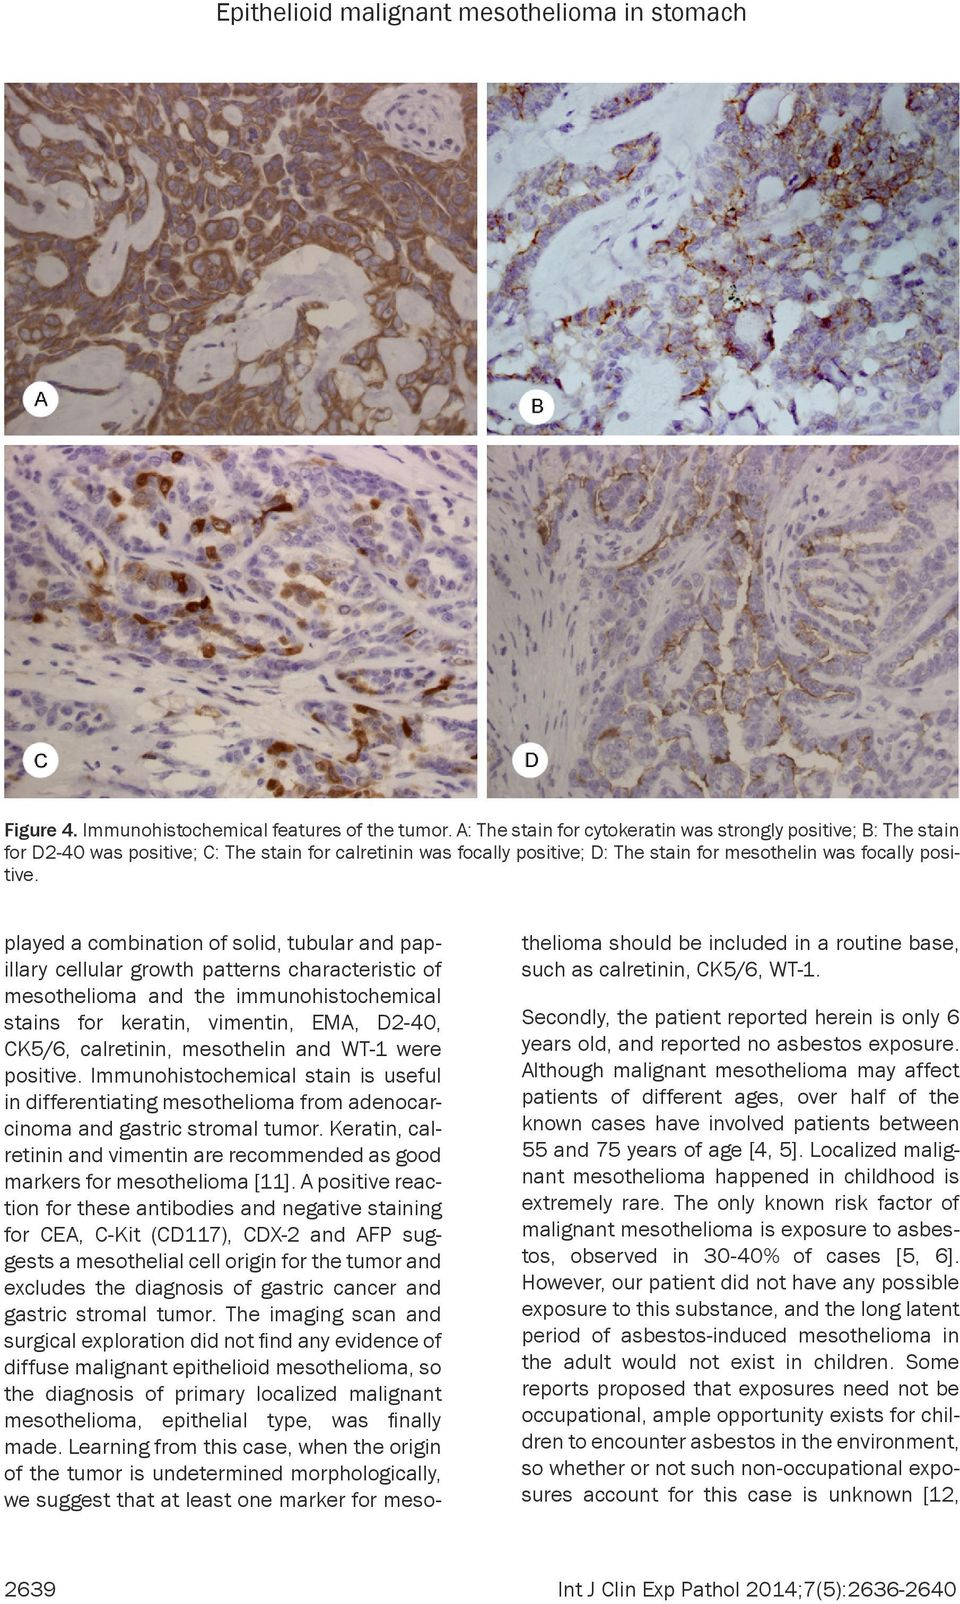 played a combination of solid, tubular and papillary cellular growth patterns characteristic of mesothelioma and the immunohistochemical stains for keratin, vimentin, EMA, D2-40, CK5/6, calretinin,